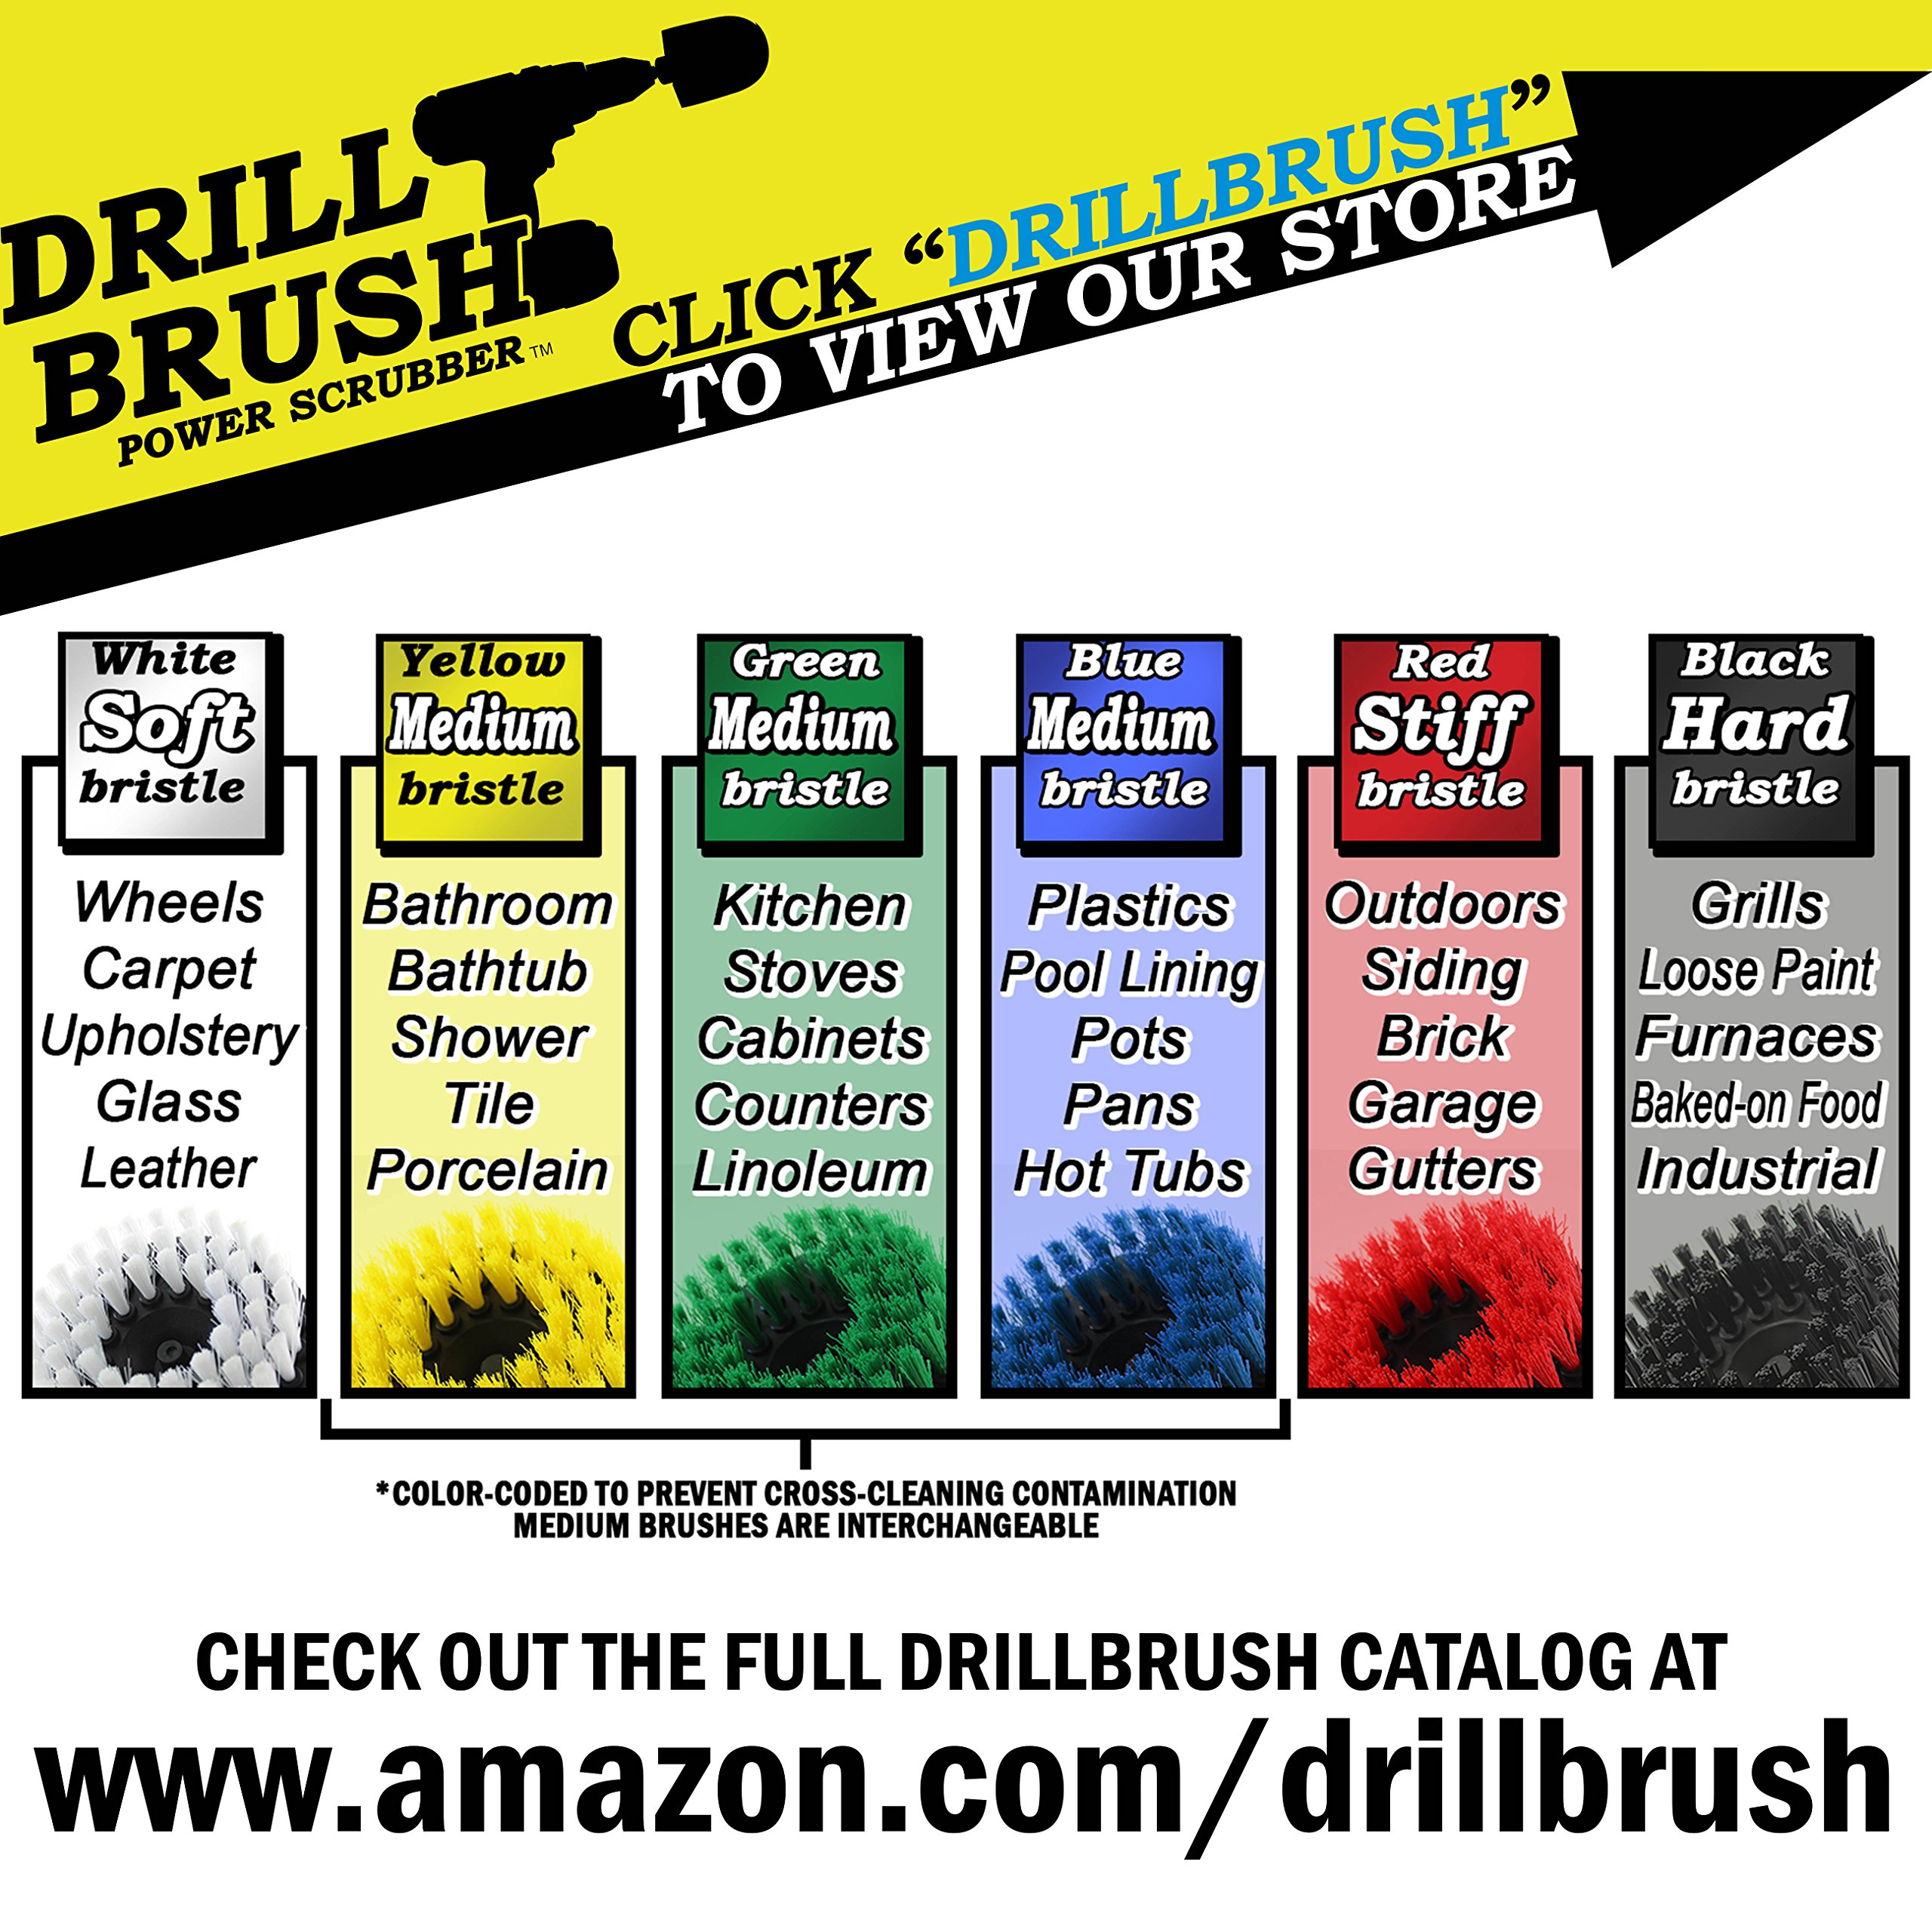 Stiff Bristle 4 Piece Drill Brush Nylon Cordless Drill Powered Spinning Brush Heavy Duty Scrubbing by Drillbrush by Drillbrush (Image #4)